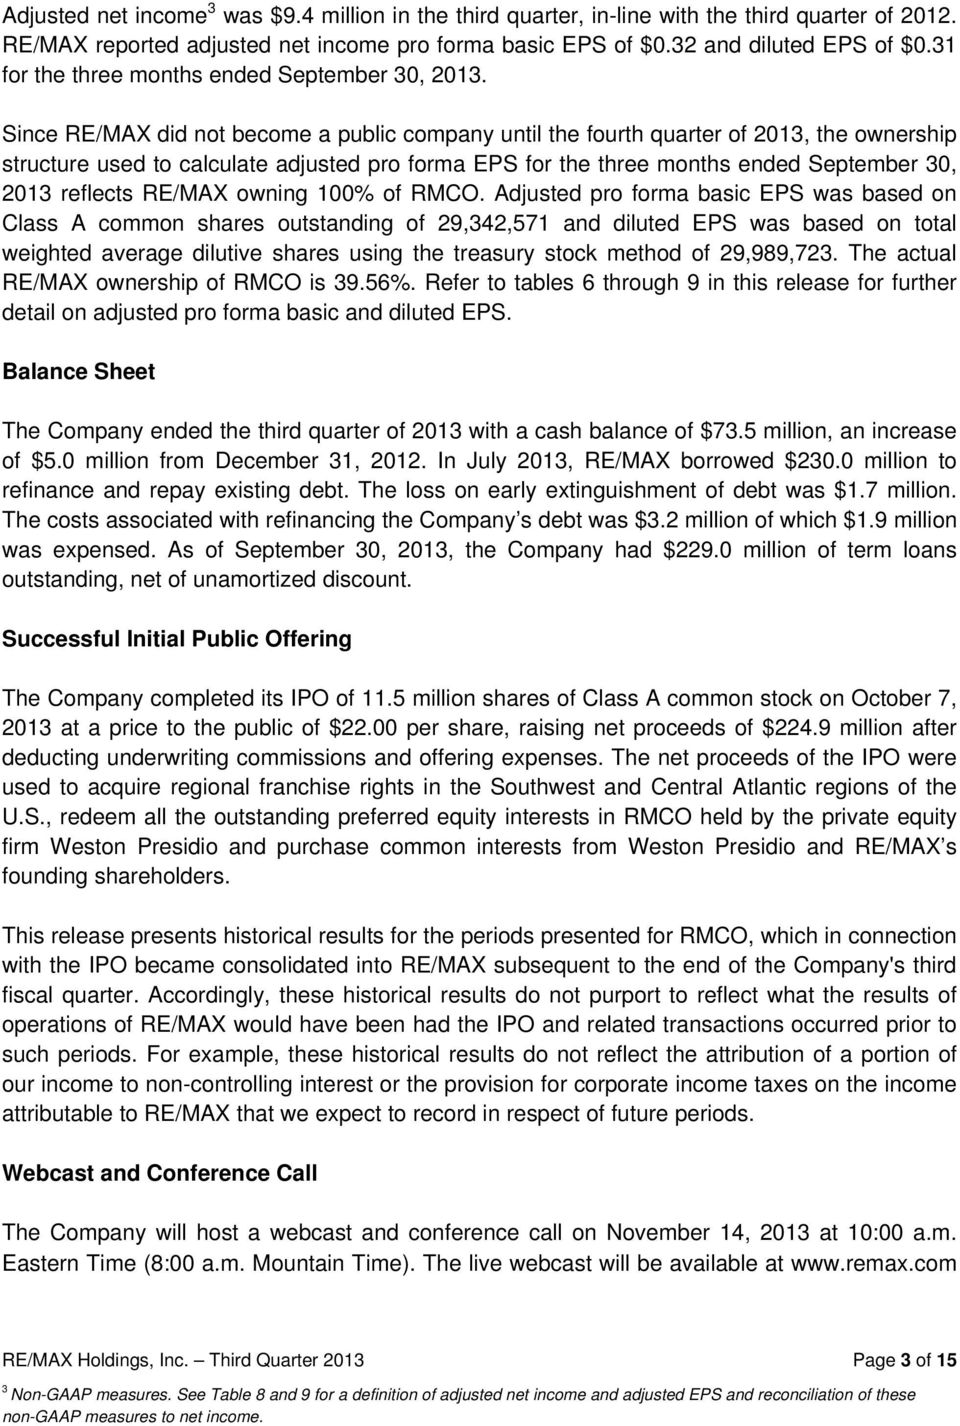 Since RE/MAX did not become a public company until the fourth quarter of 2013, the ownership structure used to calculate adjusted pro forma EPS for the three months ended September 30, 2013 reflects